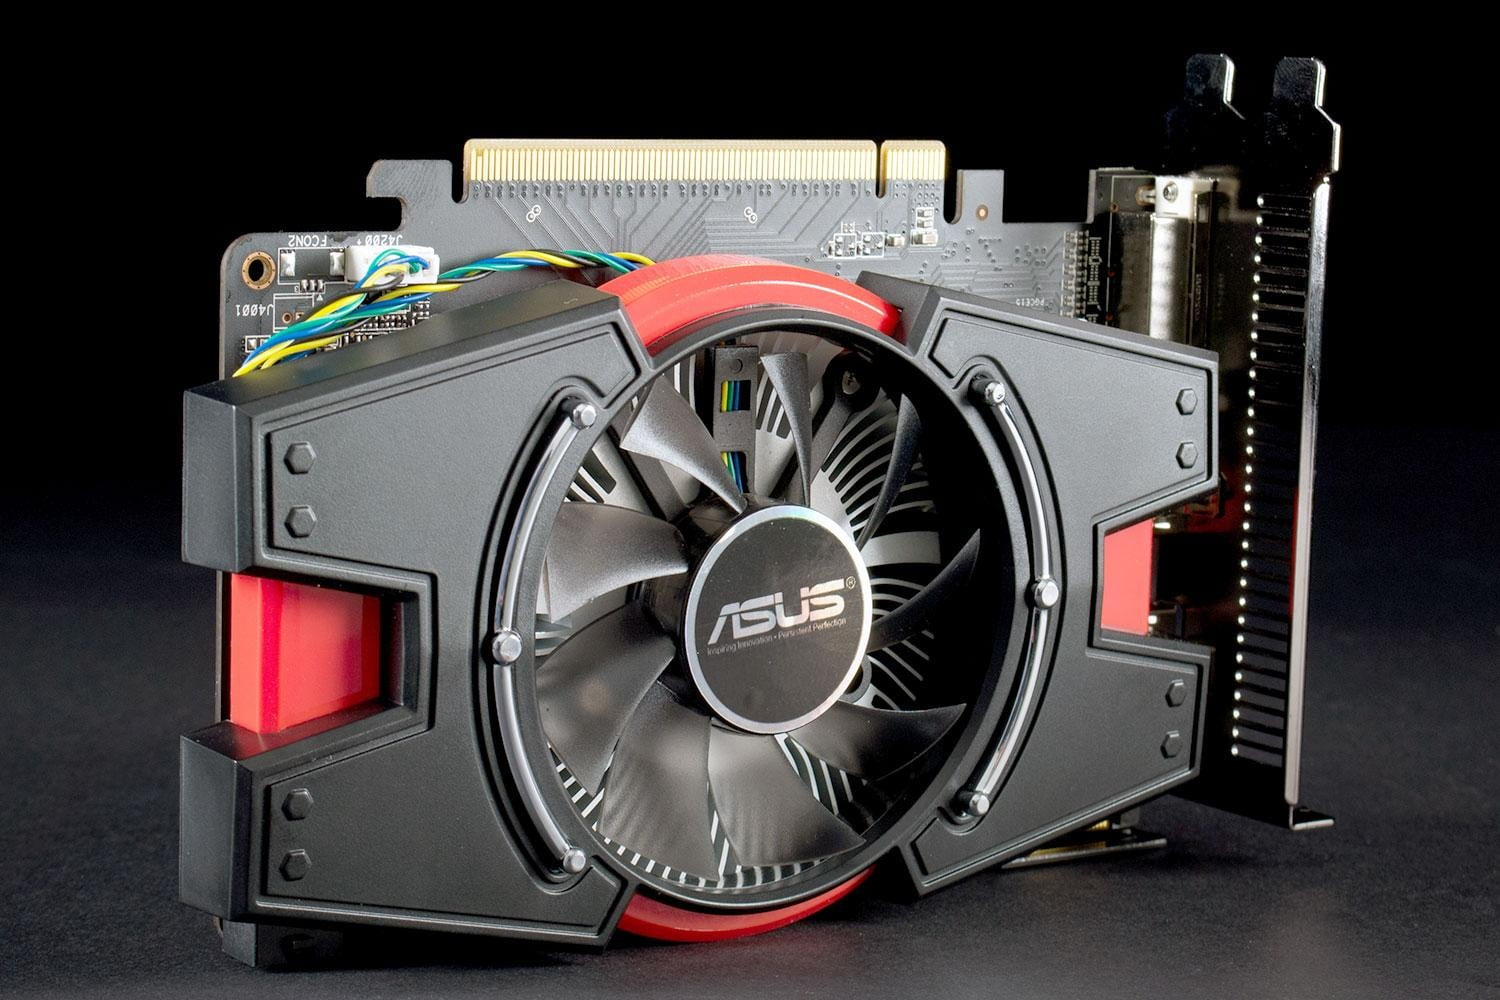 Asus Radeon R7 250X review | Digital Trends